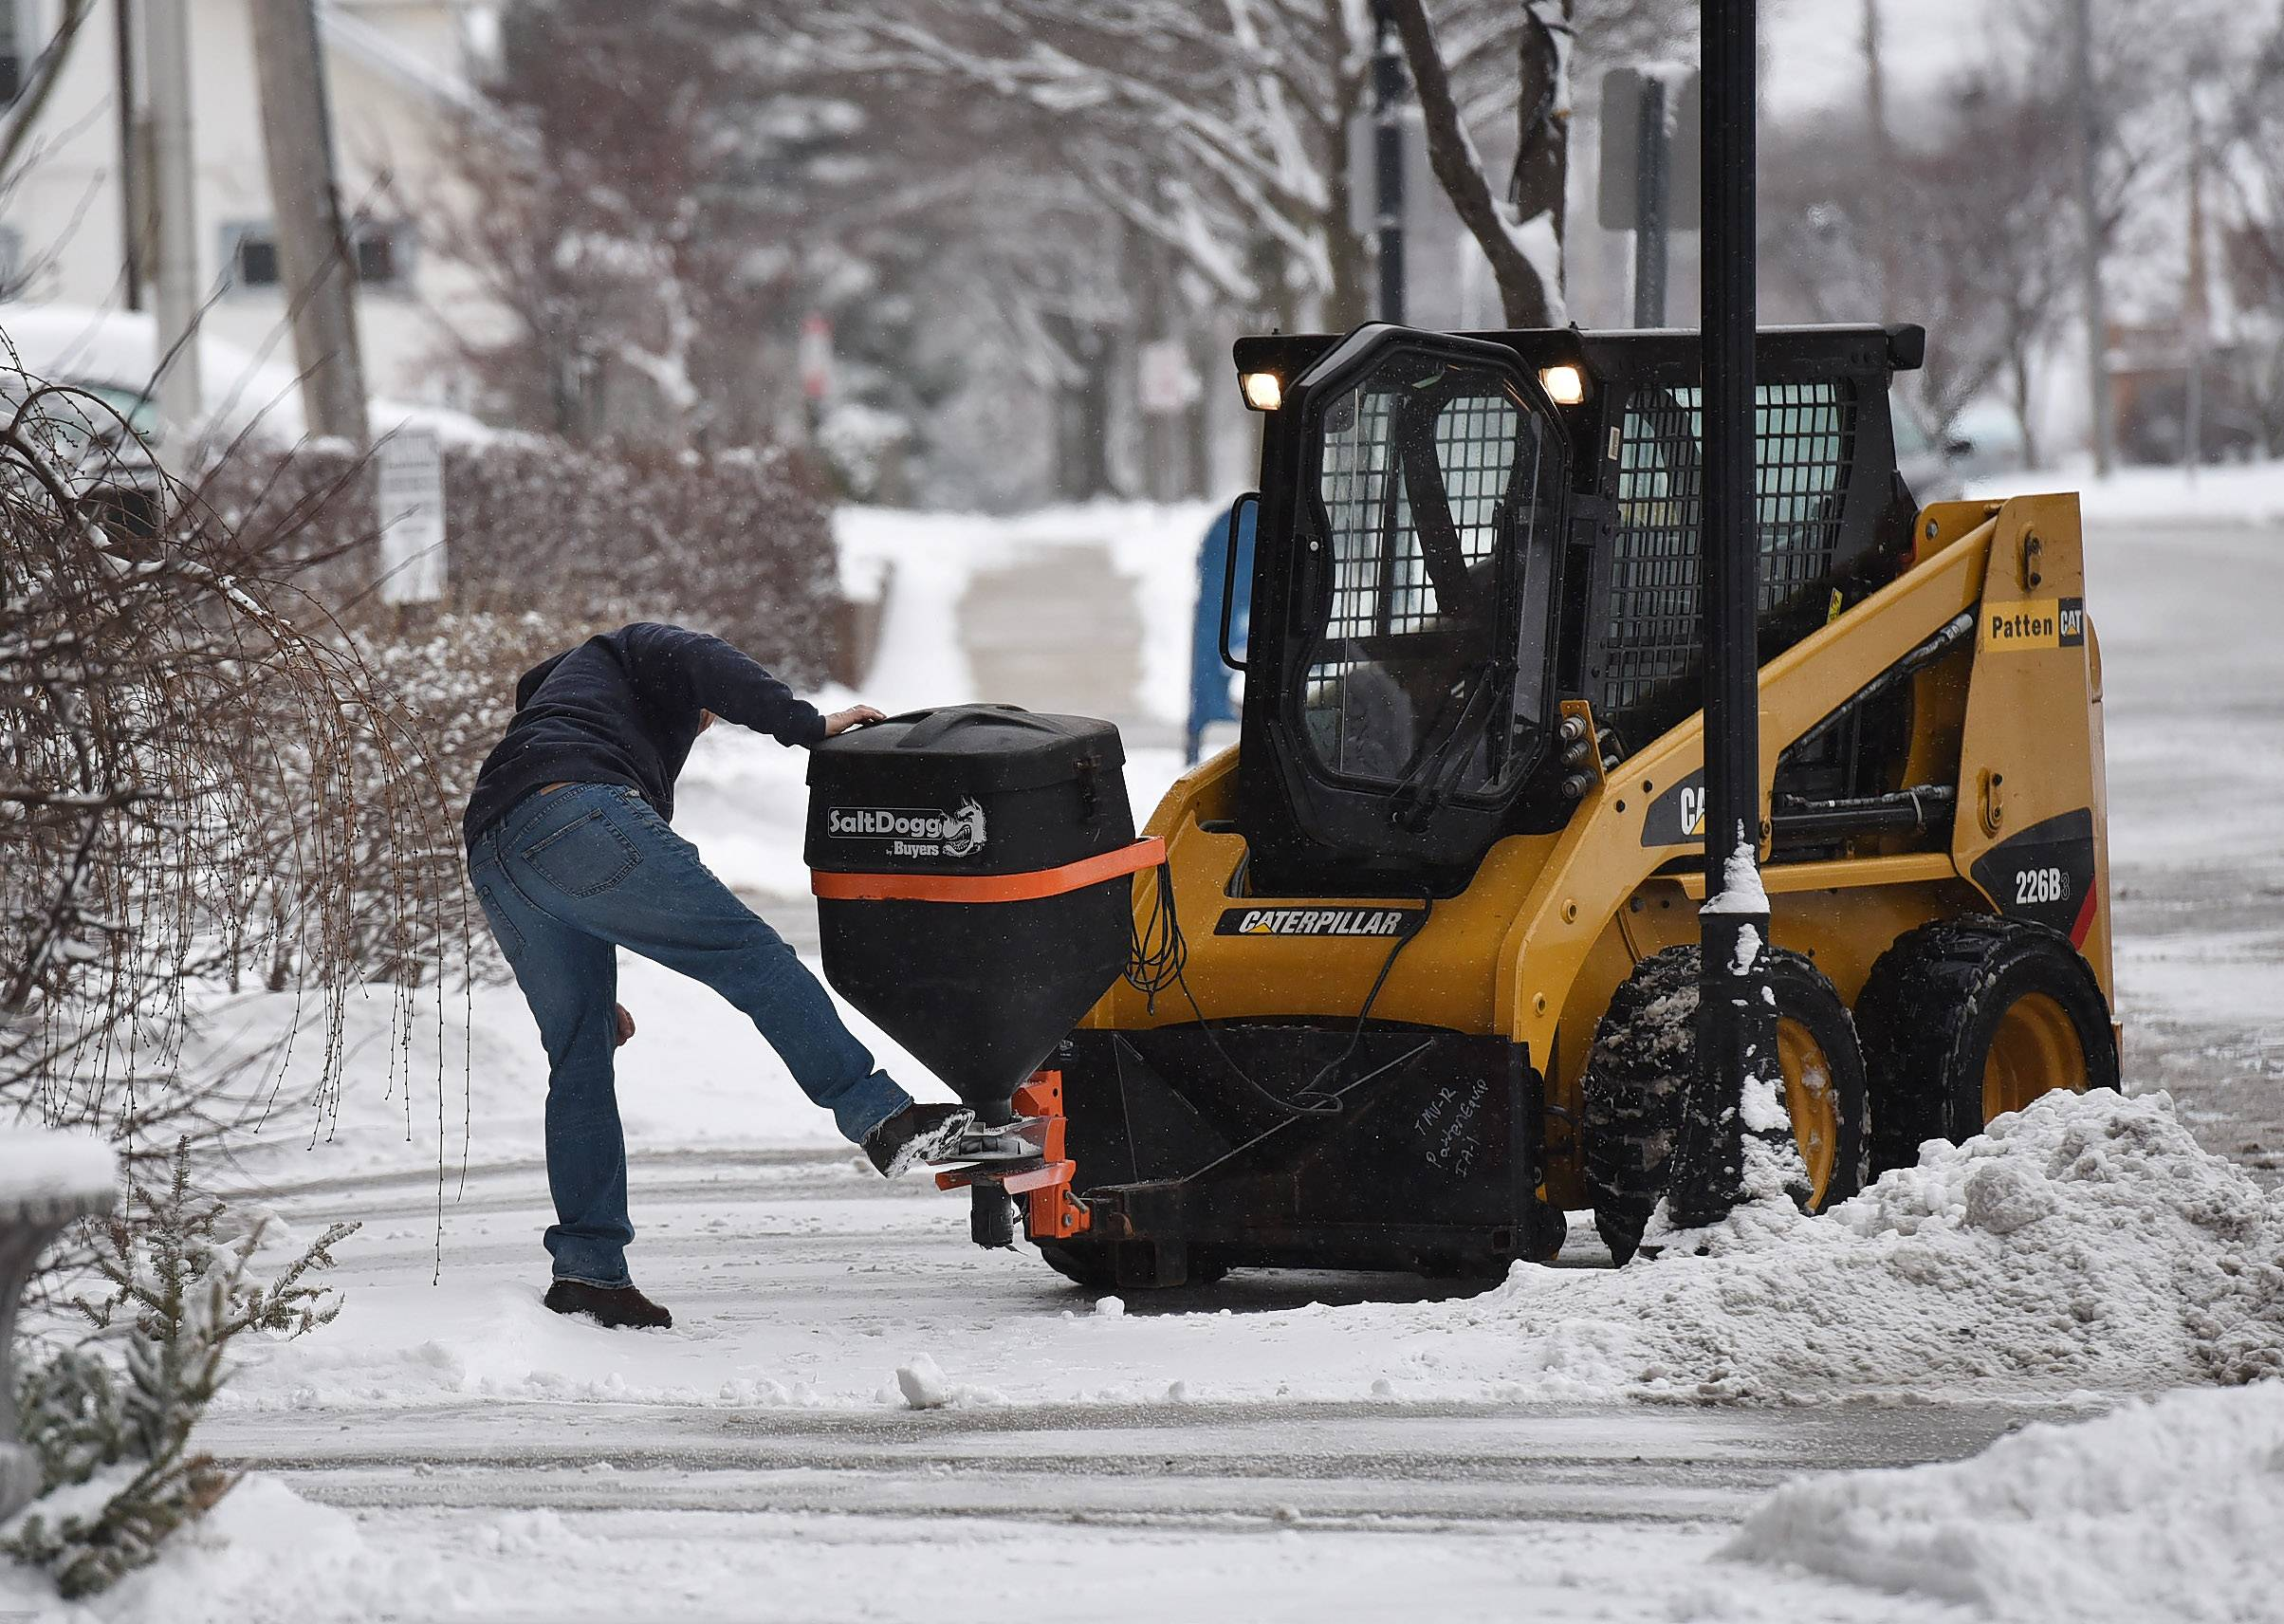 Richard Bazan gives a kick to free up some salt while salting the sidewalk in downtown Arlington Heights Monday morning.